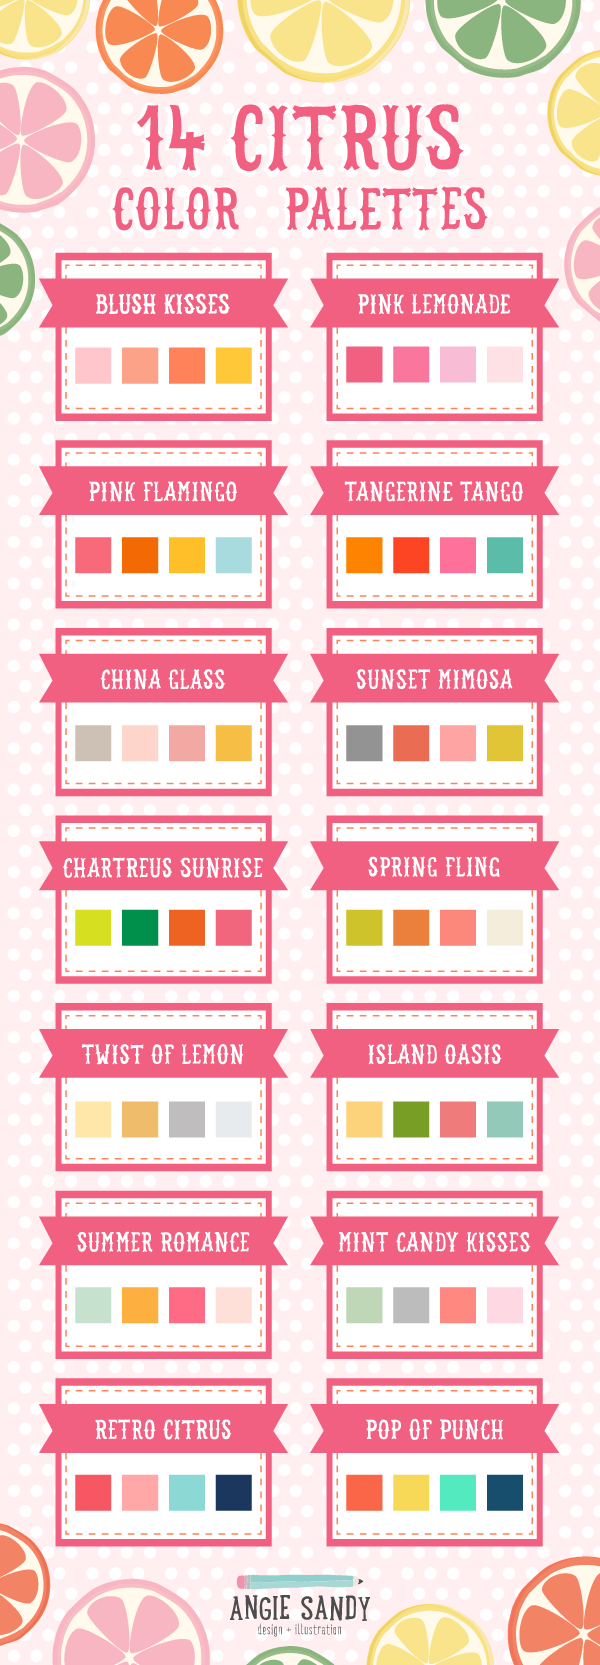 14 Citrus Color Palettes | Colors | Pinterest | Color inspiration ...